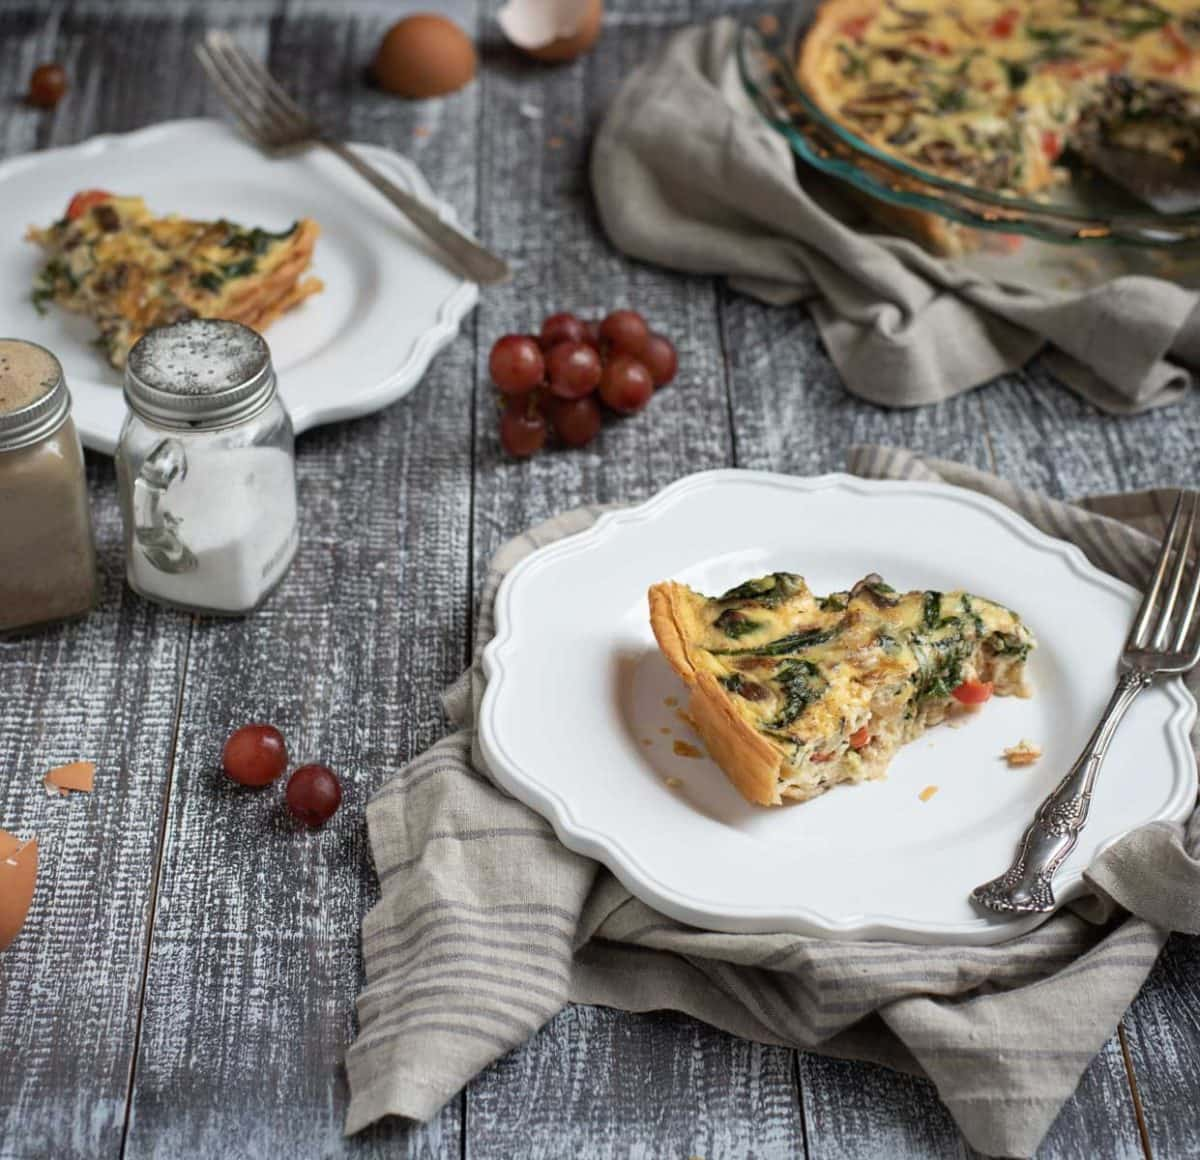 Plate with quiche slice and fork